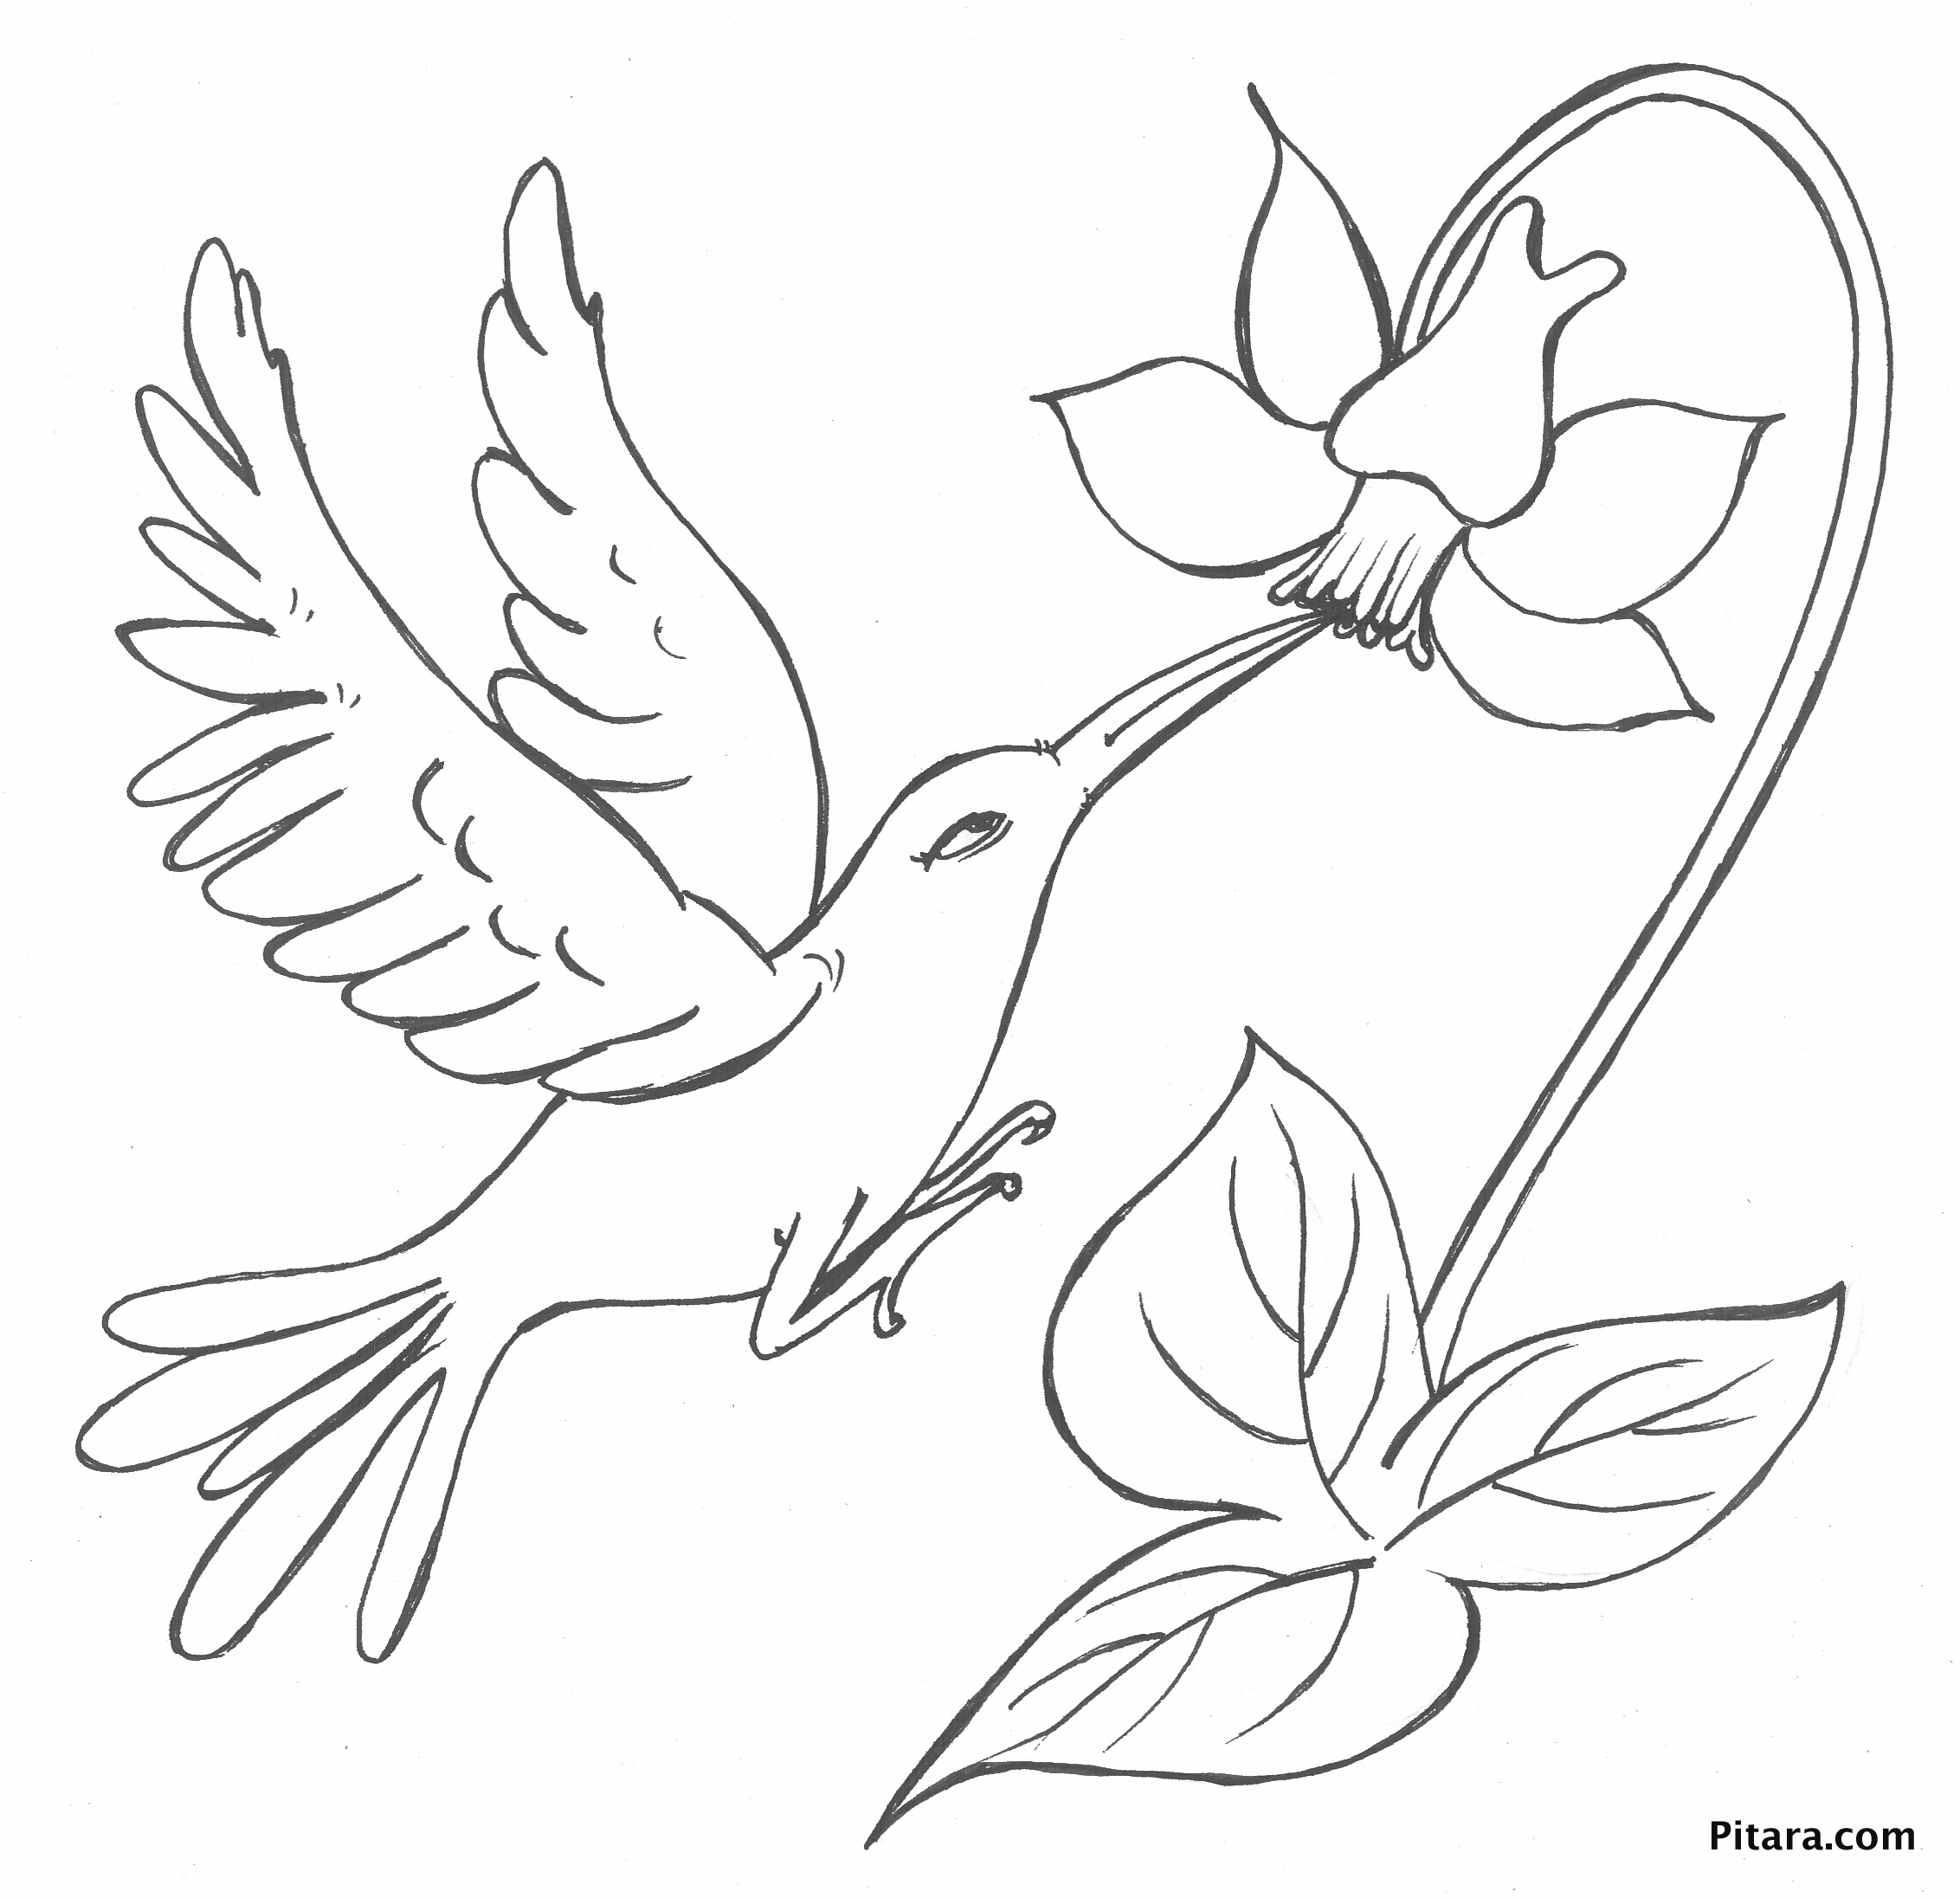 2264x2192 Bird With Flower Coloring Page Pitara Kids Network